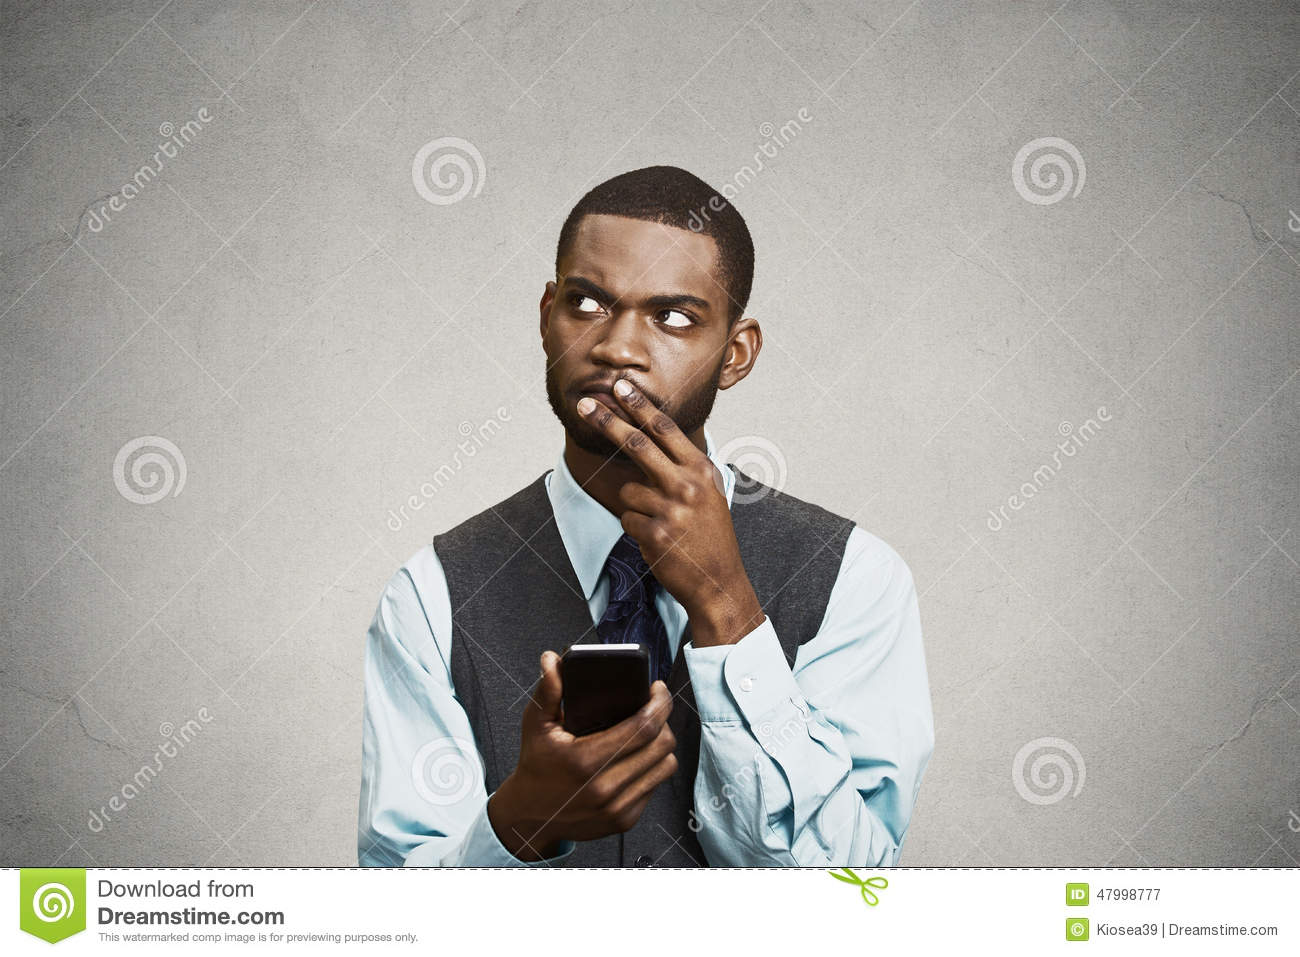 Confused executive thinking how to reply to message on smart phone